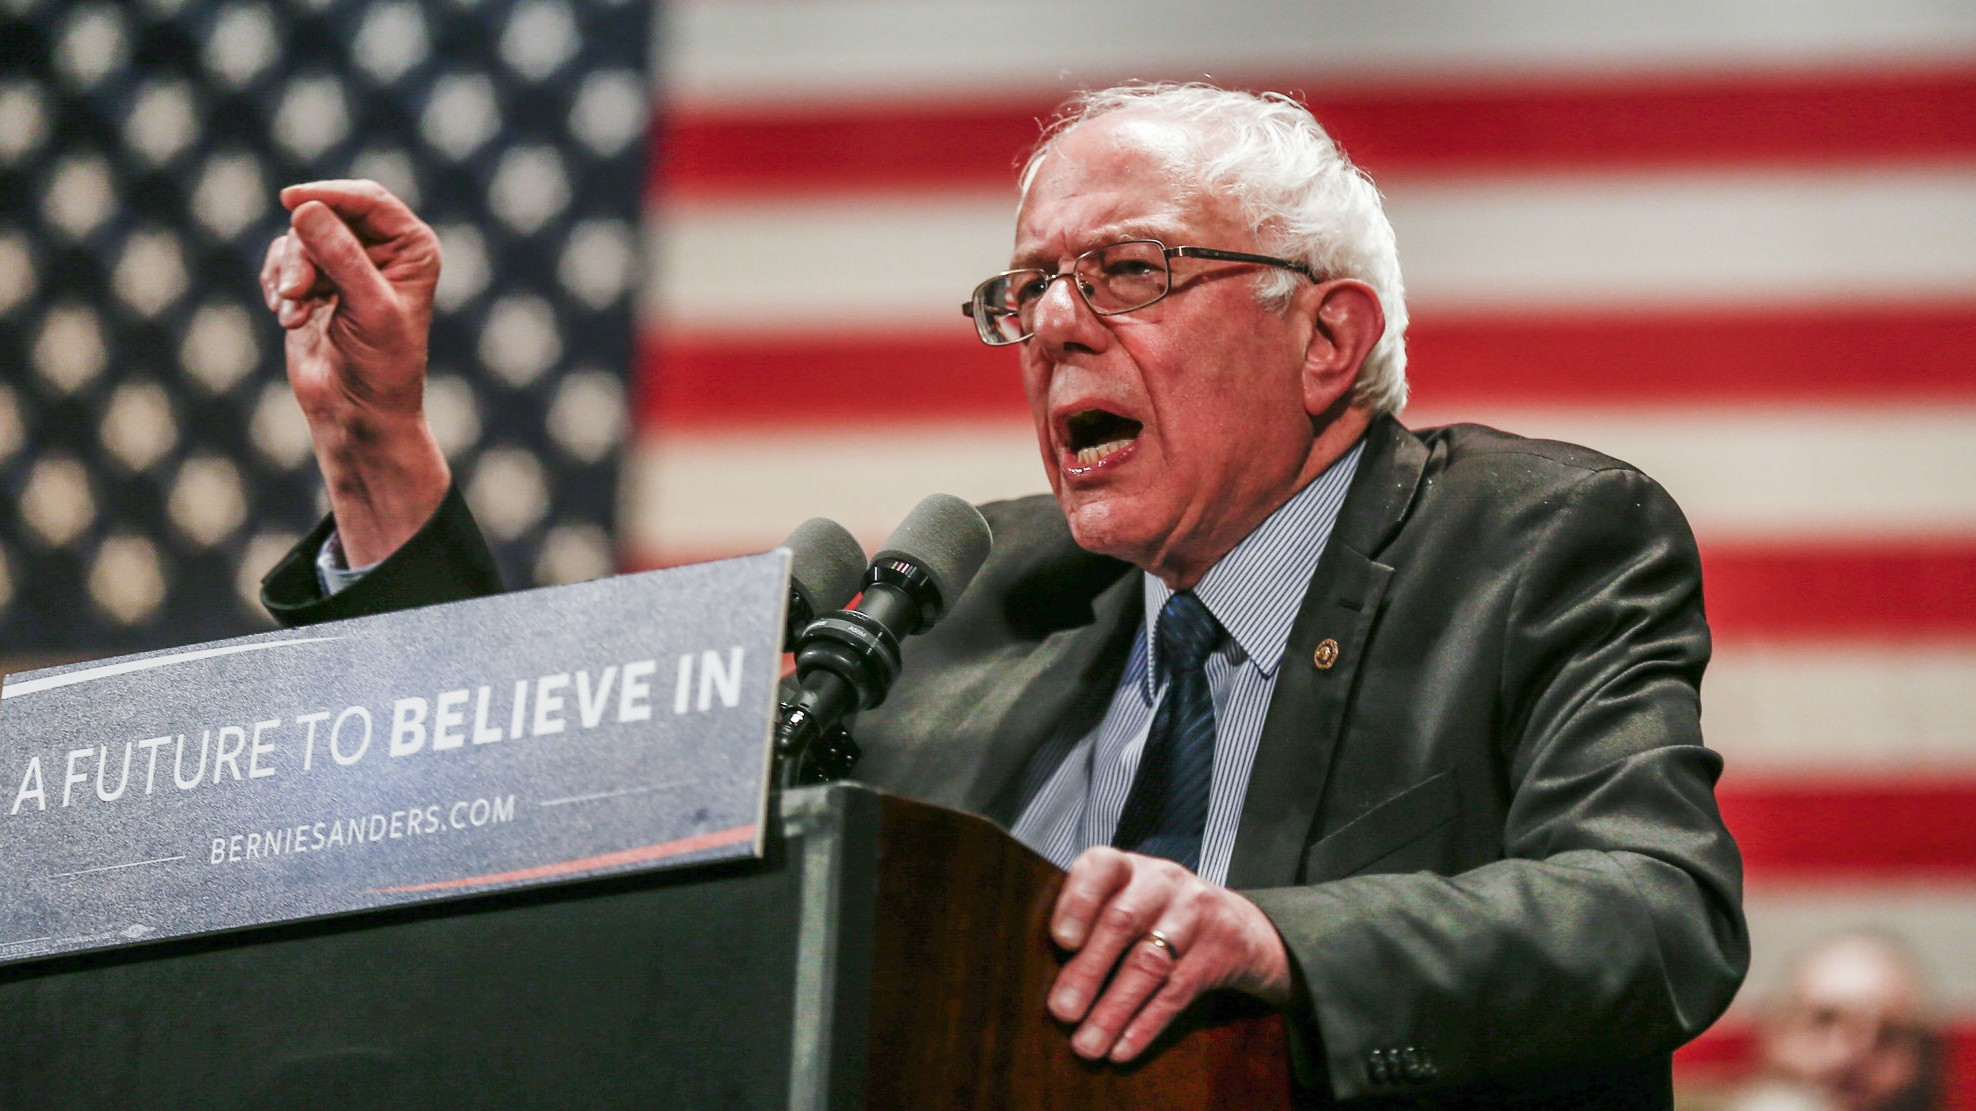 Bernie Sanders Thinks He Can Win the West, but That Probably Won't Be Enough